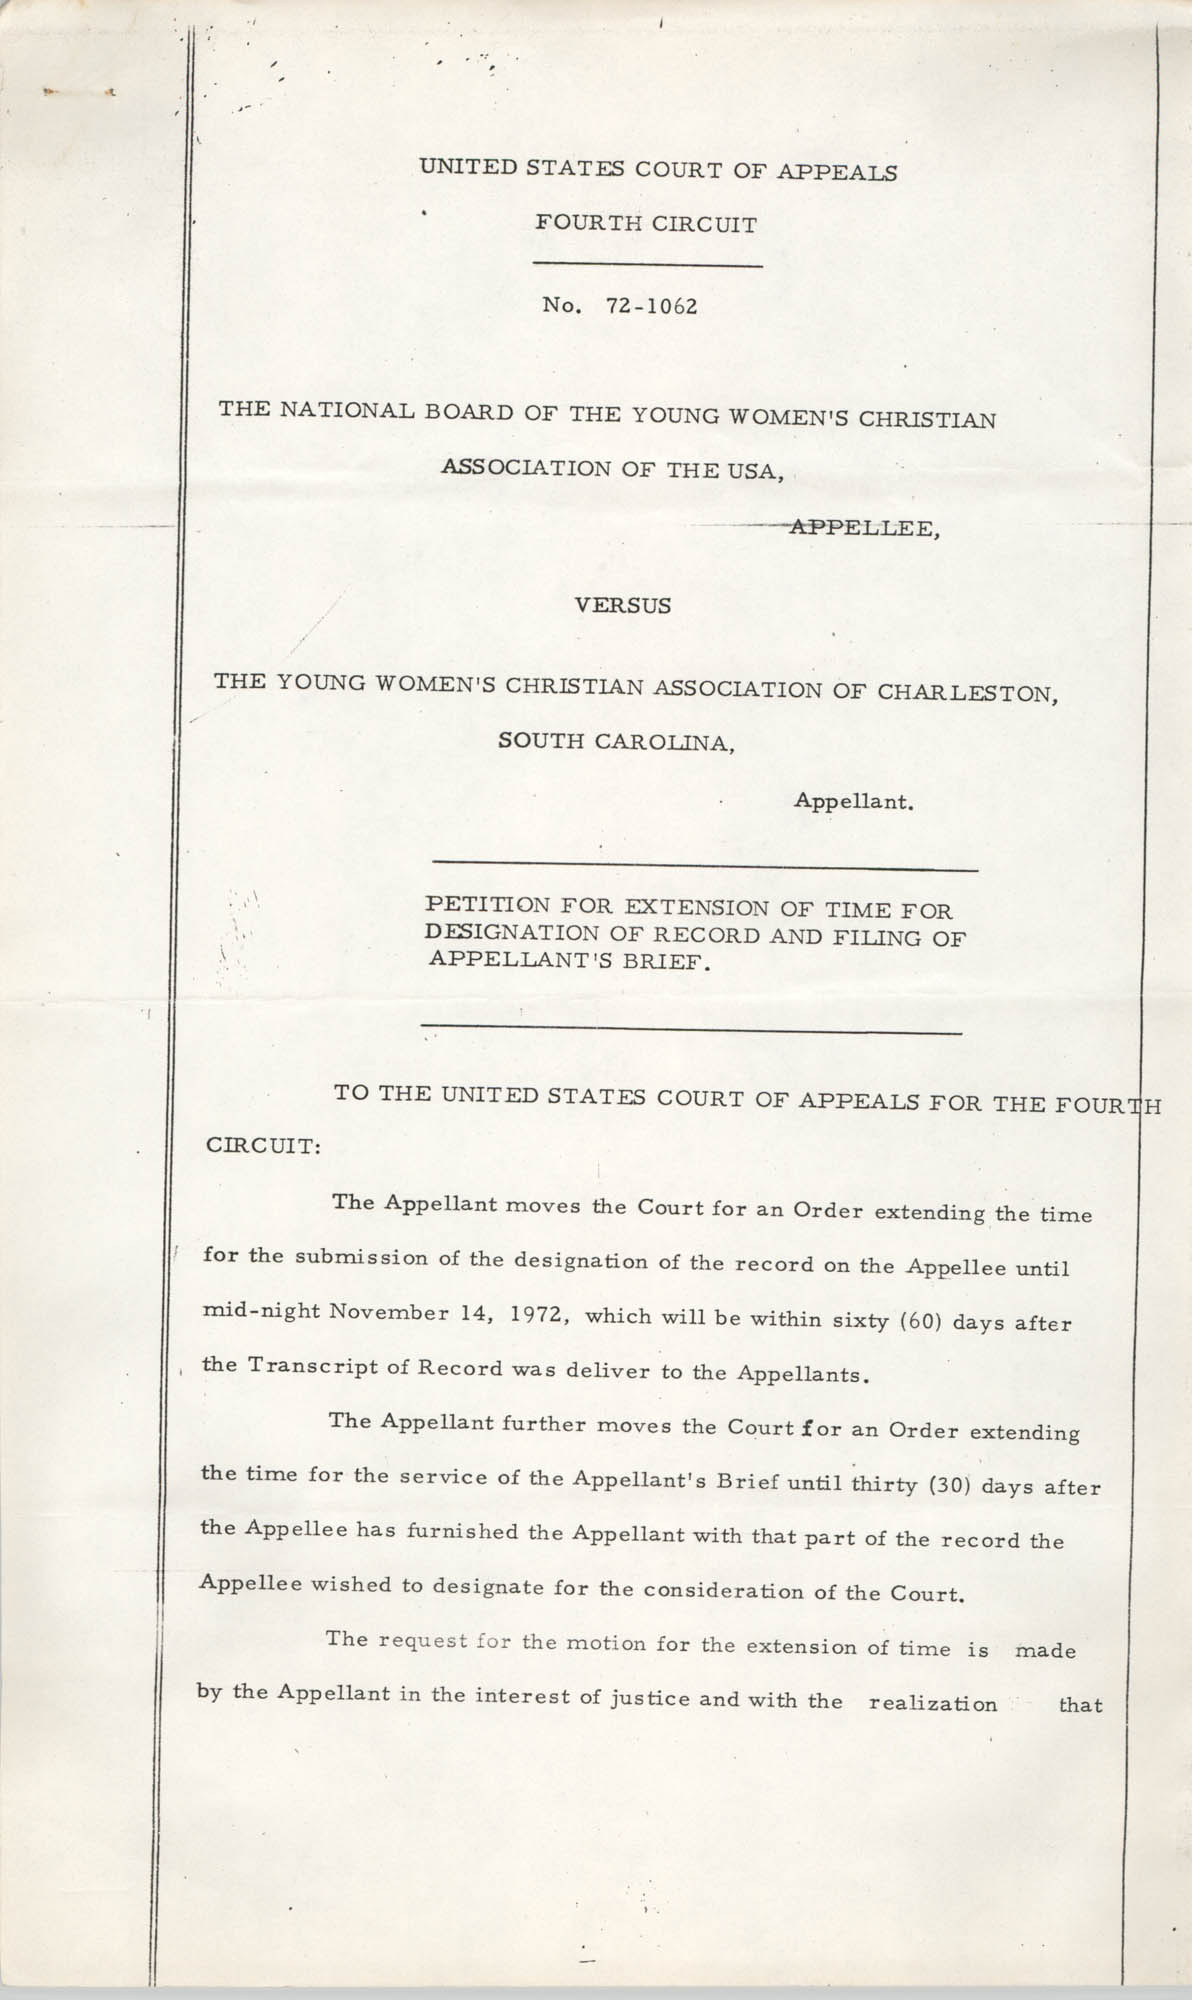 National Board of the Y.W.C.A. of the U.S.A. vs. Y.W.C.A. of Charleston South Carolina, No. 72-1062, Petition for Extension, Page 1